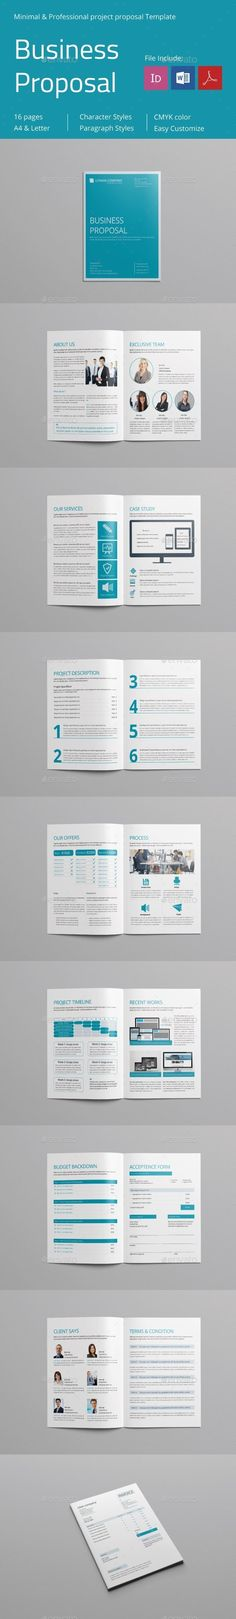 Project Proposal Template 003 Project proposal, Proposal - professional project proposal